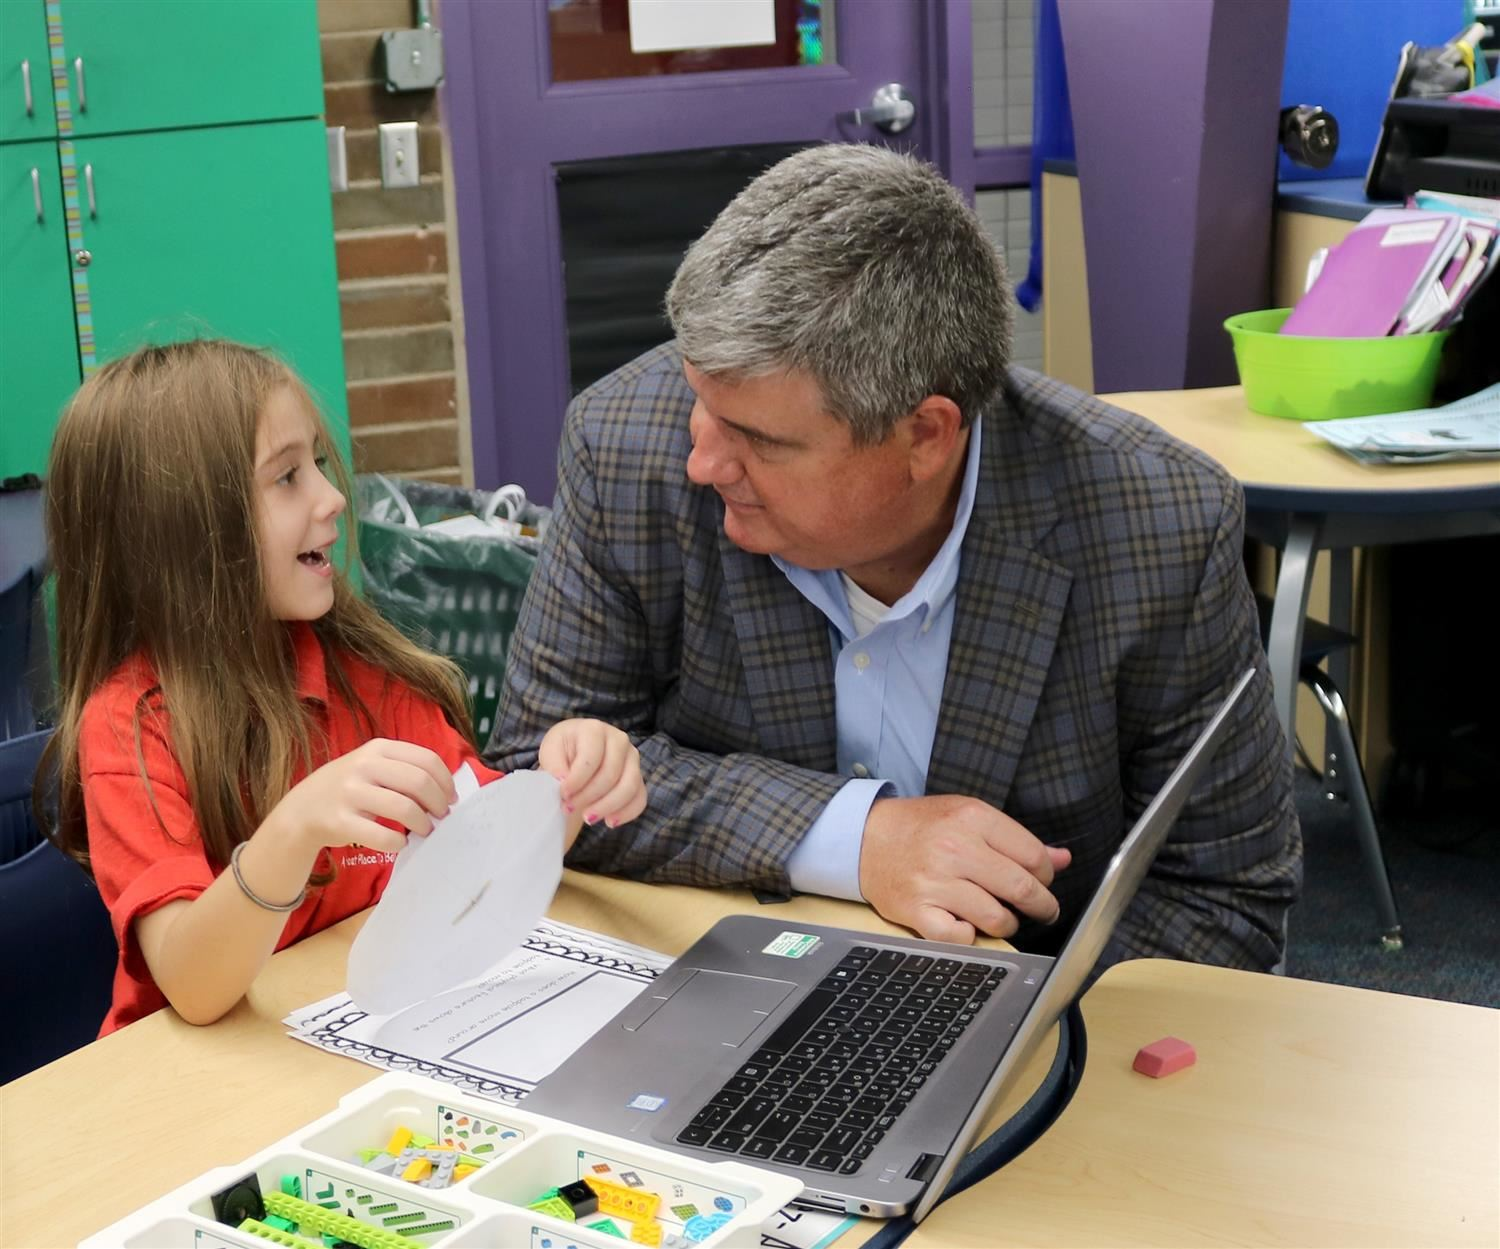 Dr. Bowden learning about an Alta Vista student's project